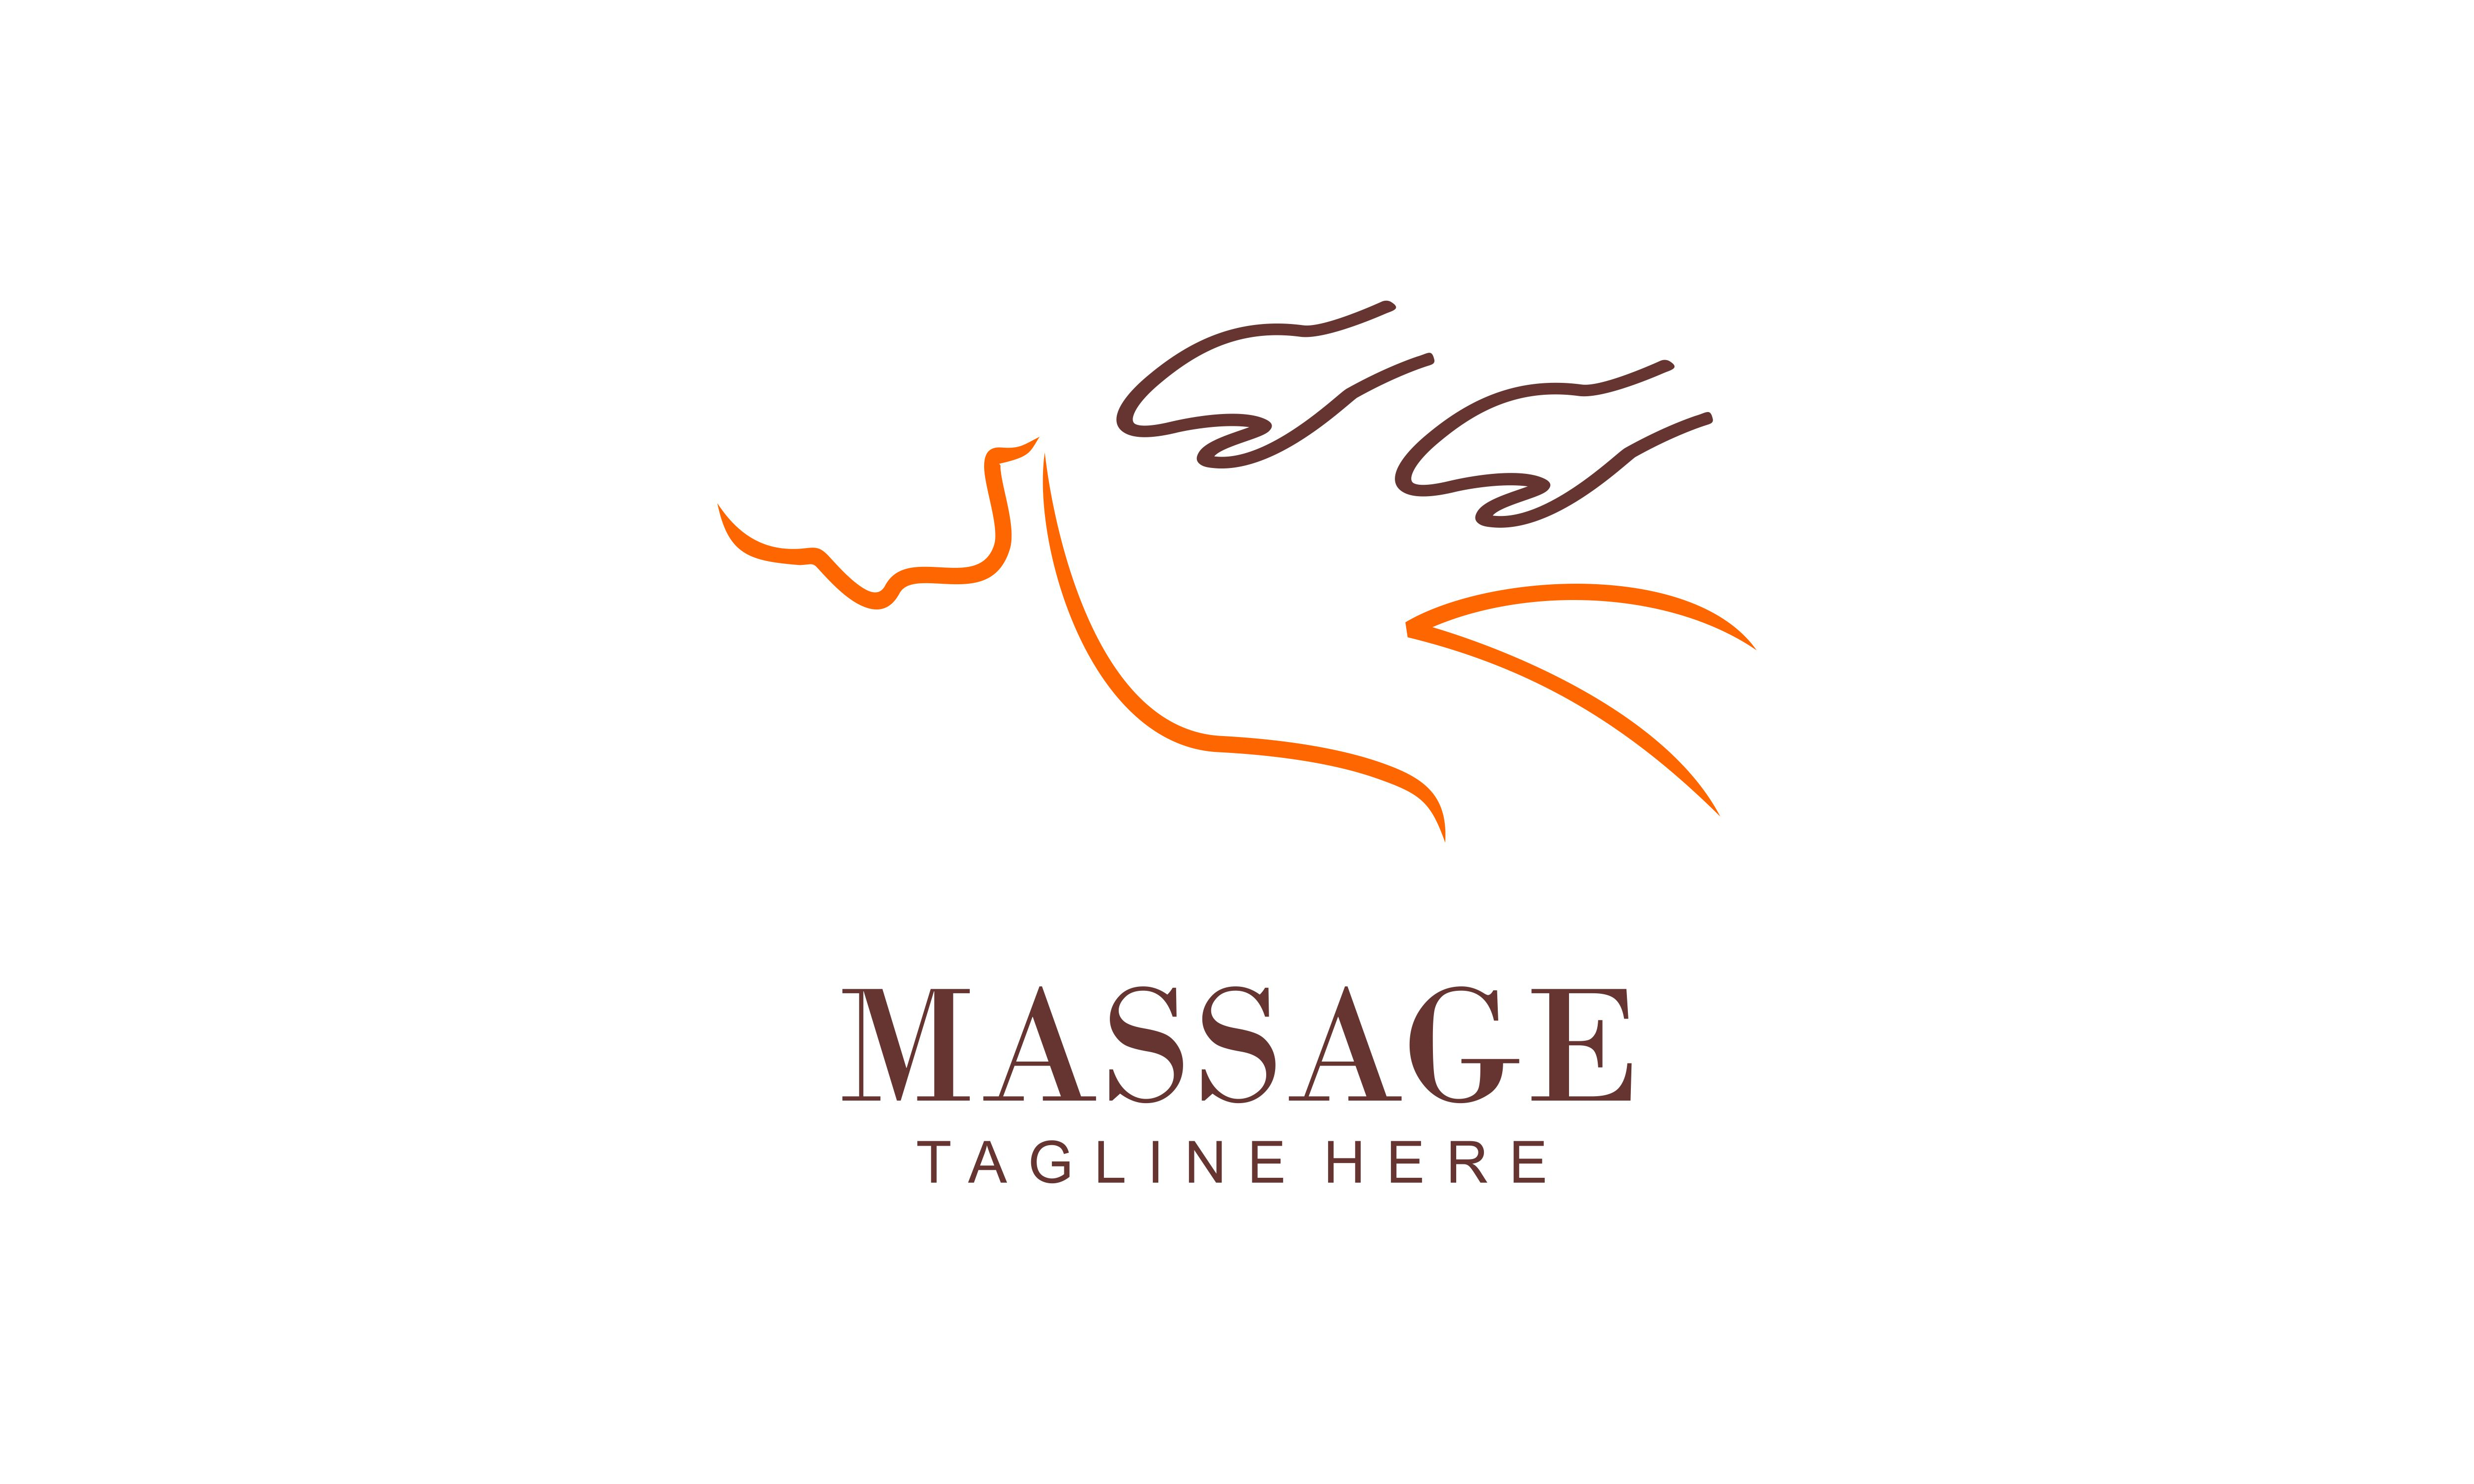 Download Free Body Massage Logo Vector Illustration Graphic By 2qnah for Cricut Explore, Silhouette and other cutting machines.